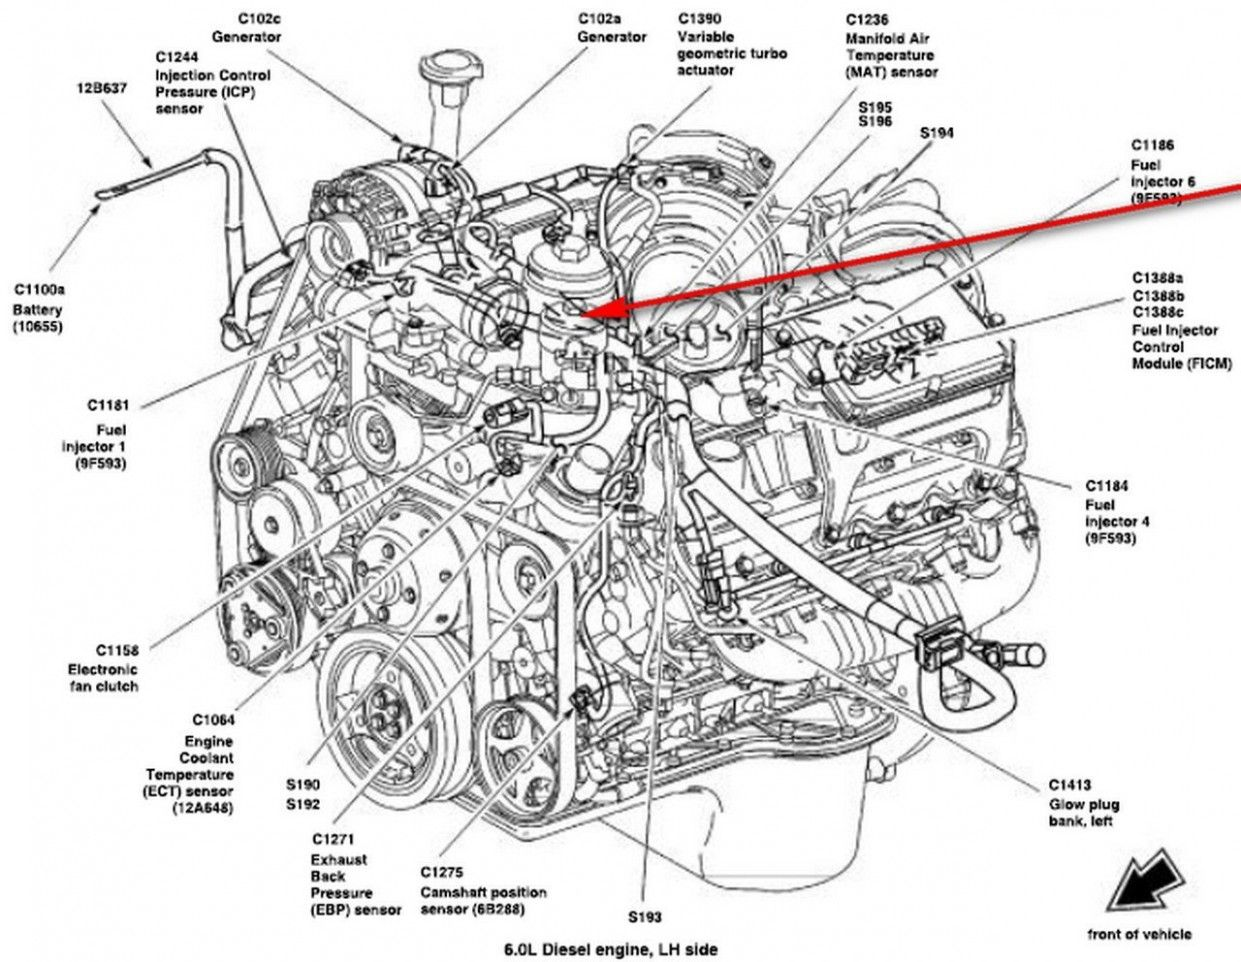 Parts Of Diesel Engine Diagram Parts Of Diesel Engine